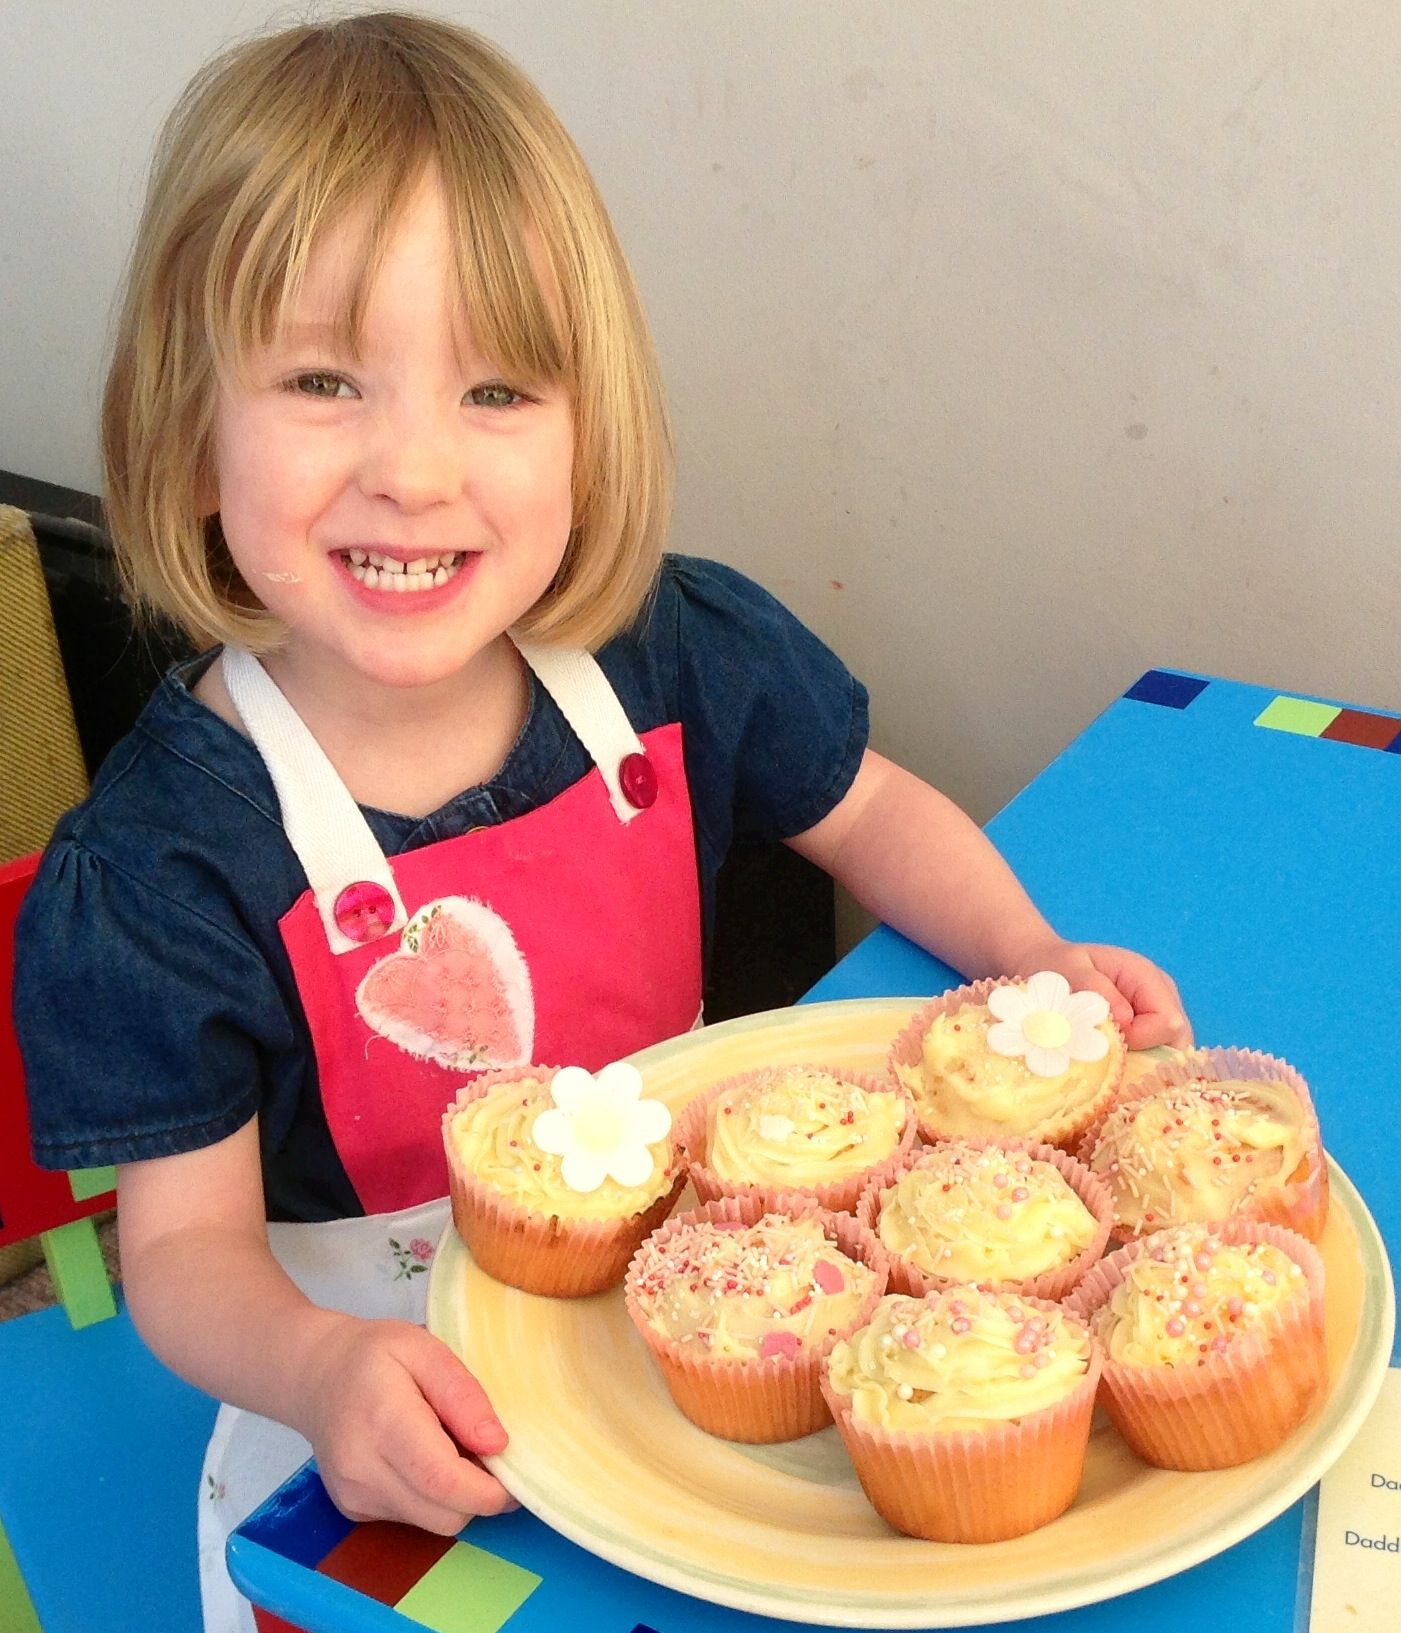 My beautiful daughters cakes baked together